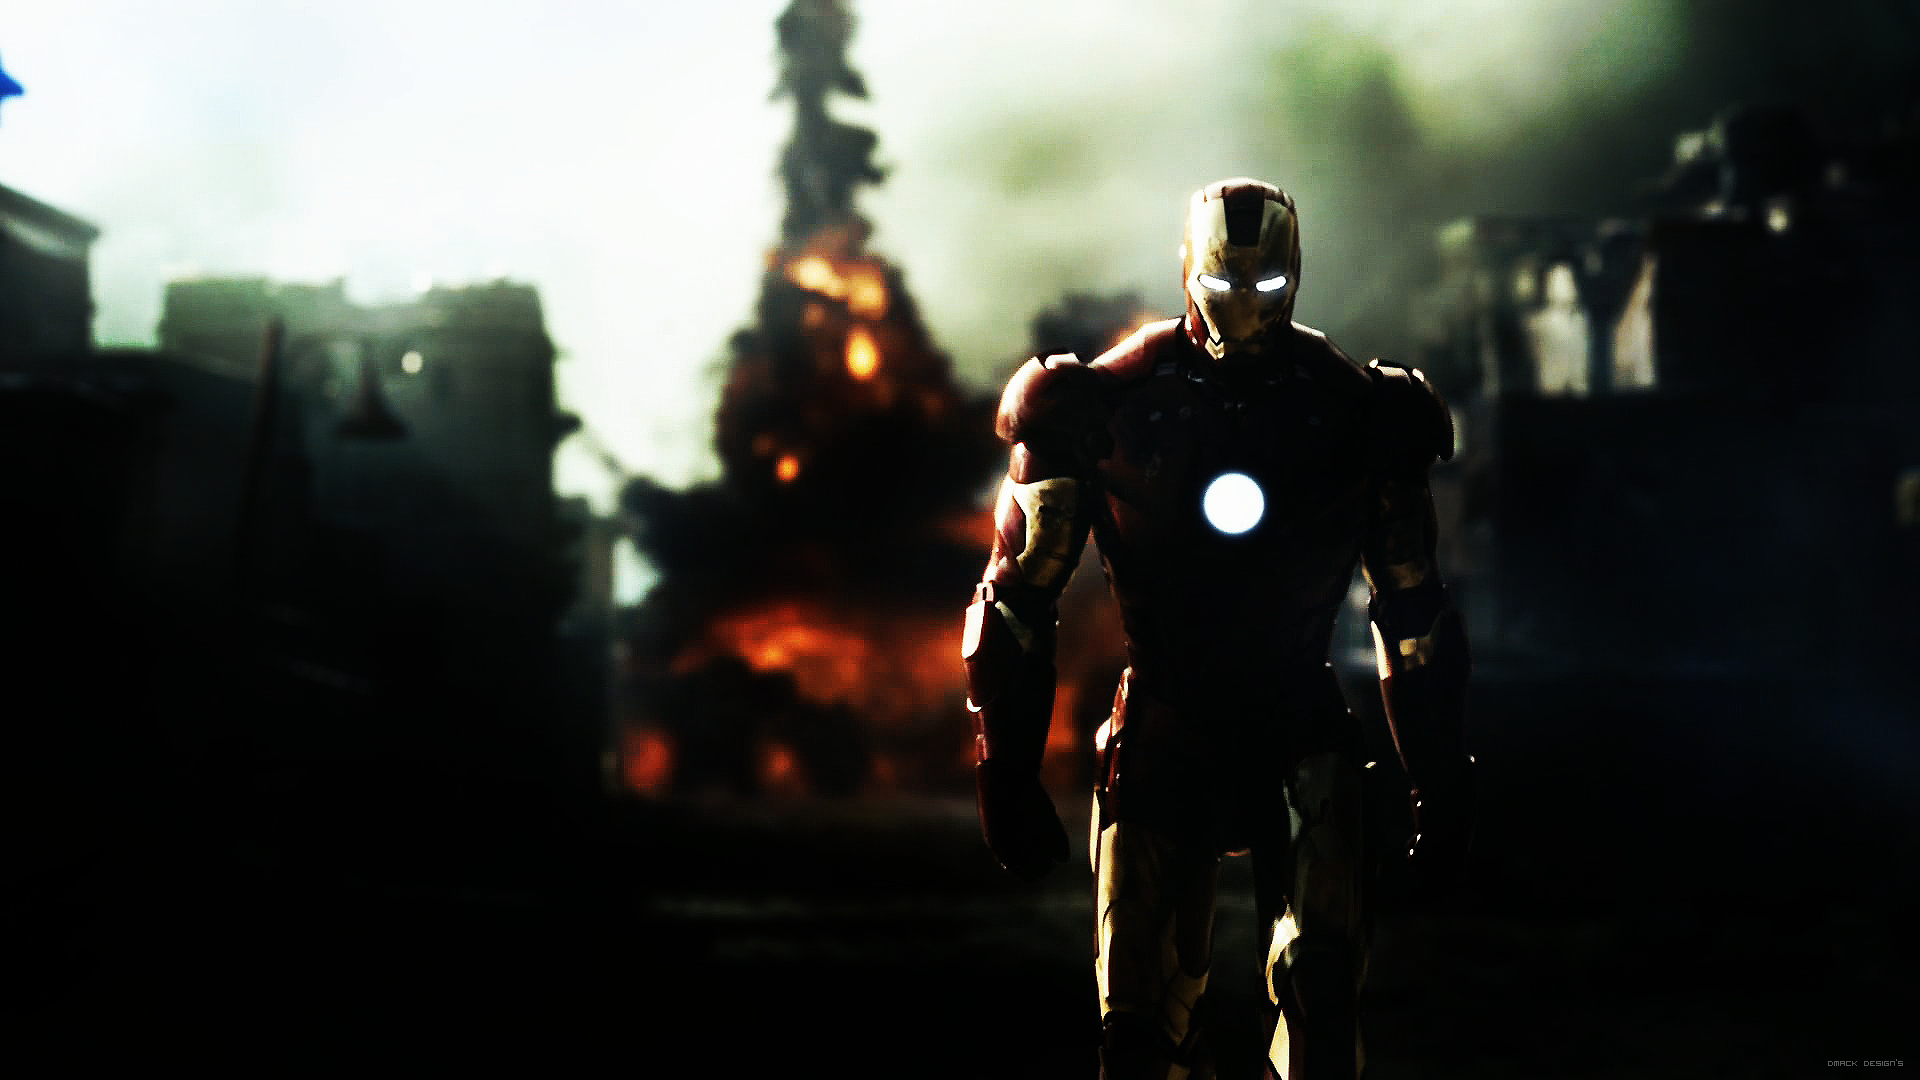 Ironman | Ironman Images, Pictures, Wallpapers on 7.TH